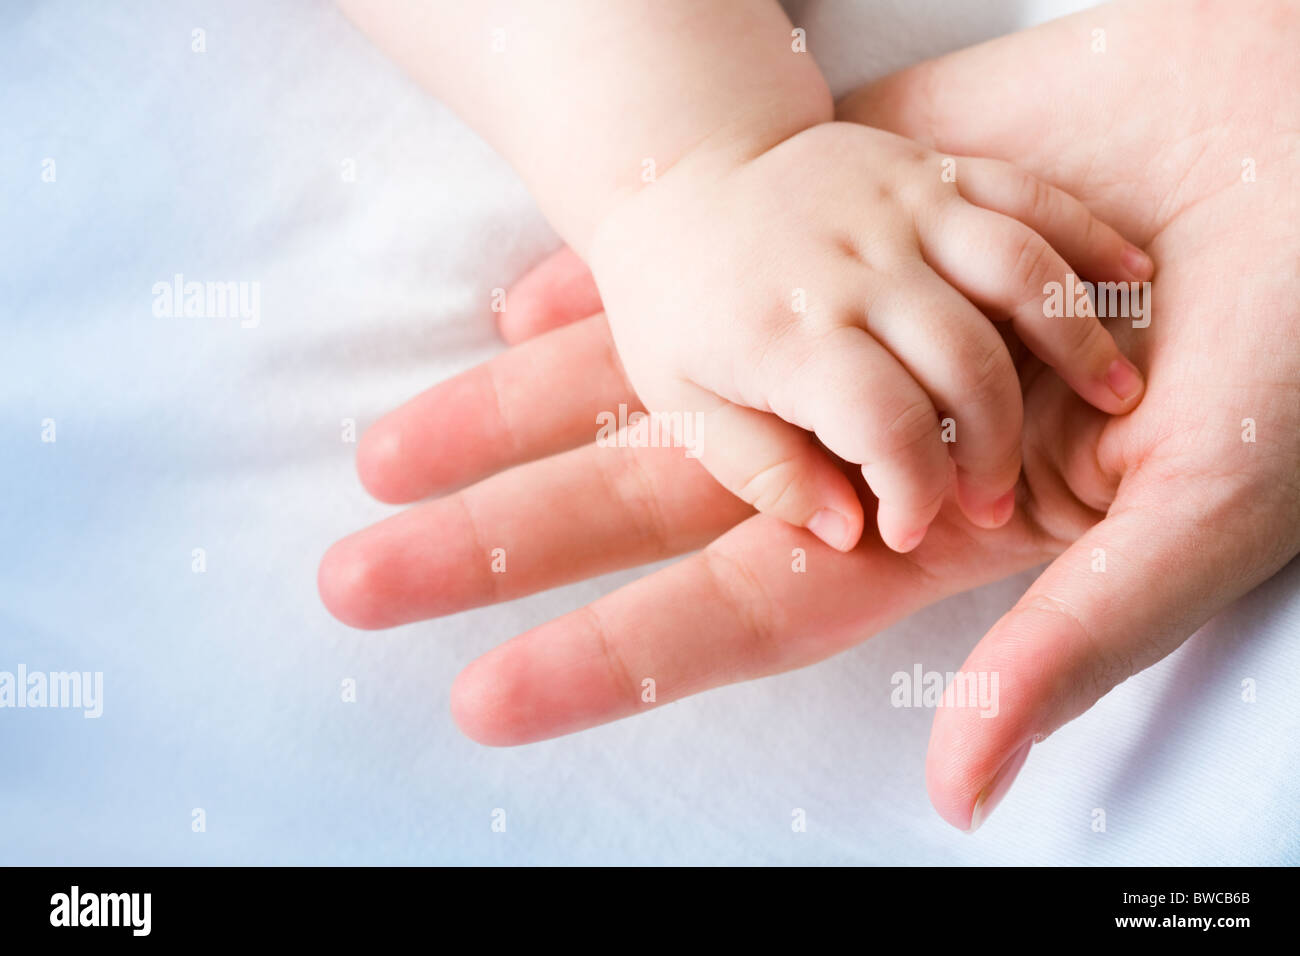 Image of mom's palm with newborn baby hand on its surface - Stock Image